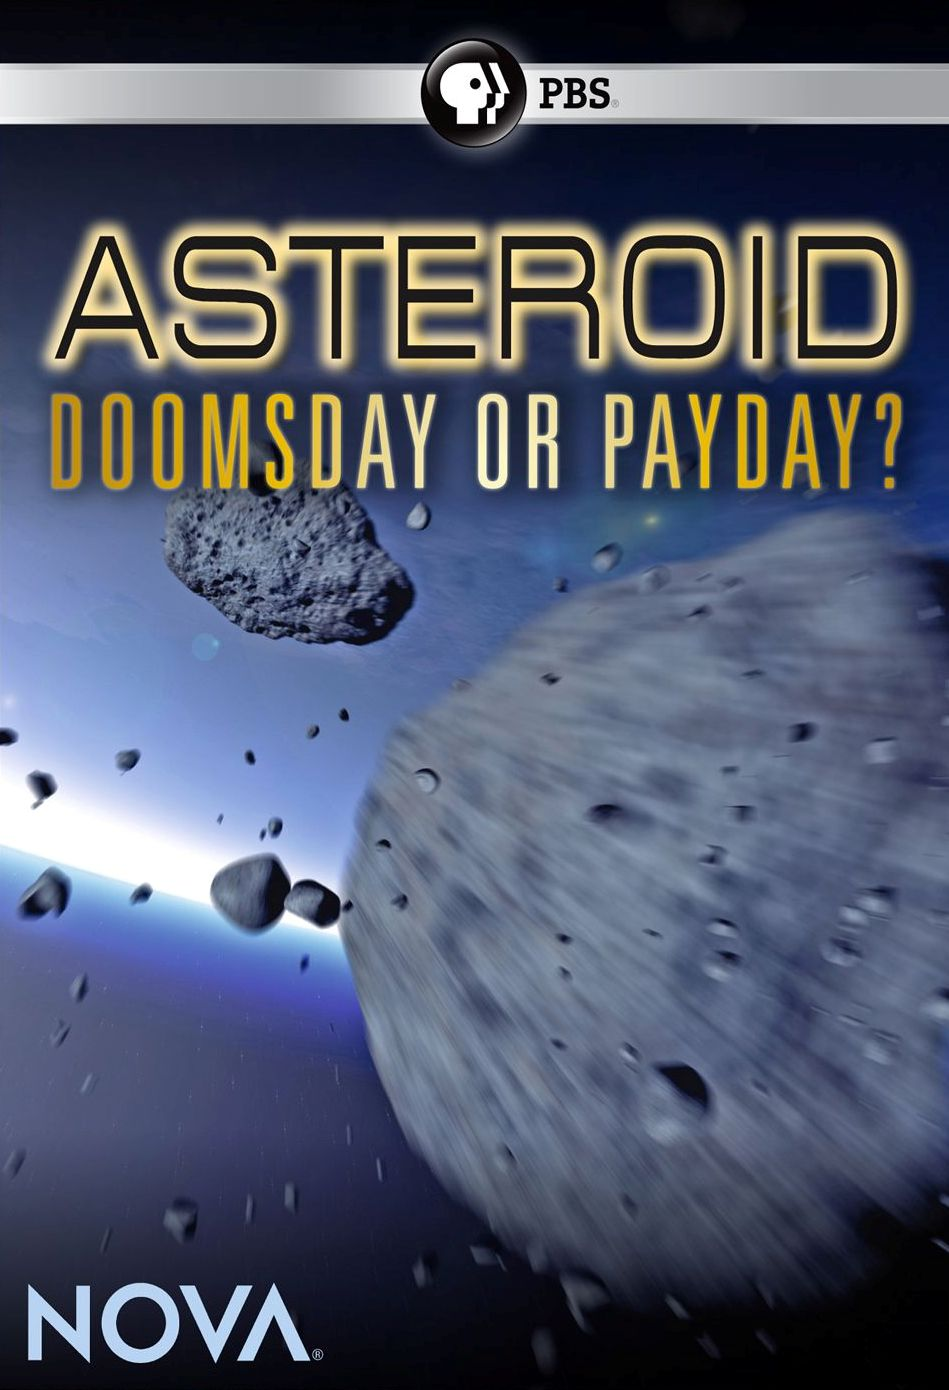 NOVA: Asteroids - Doomsday or Payday?